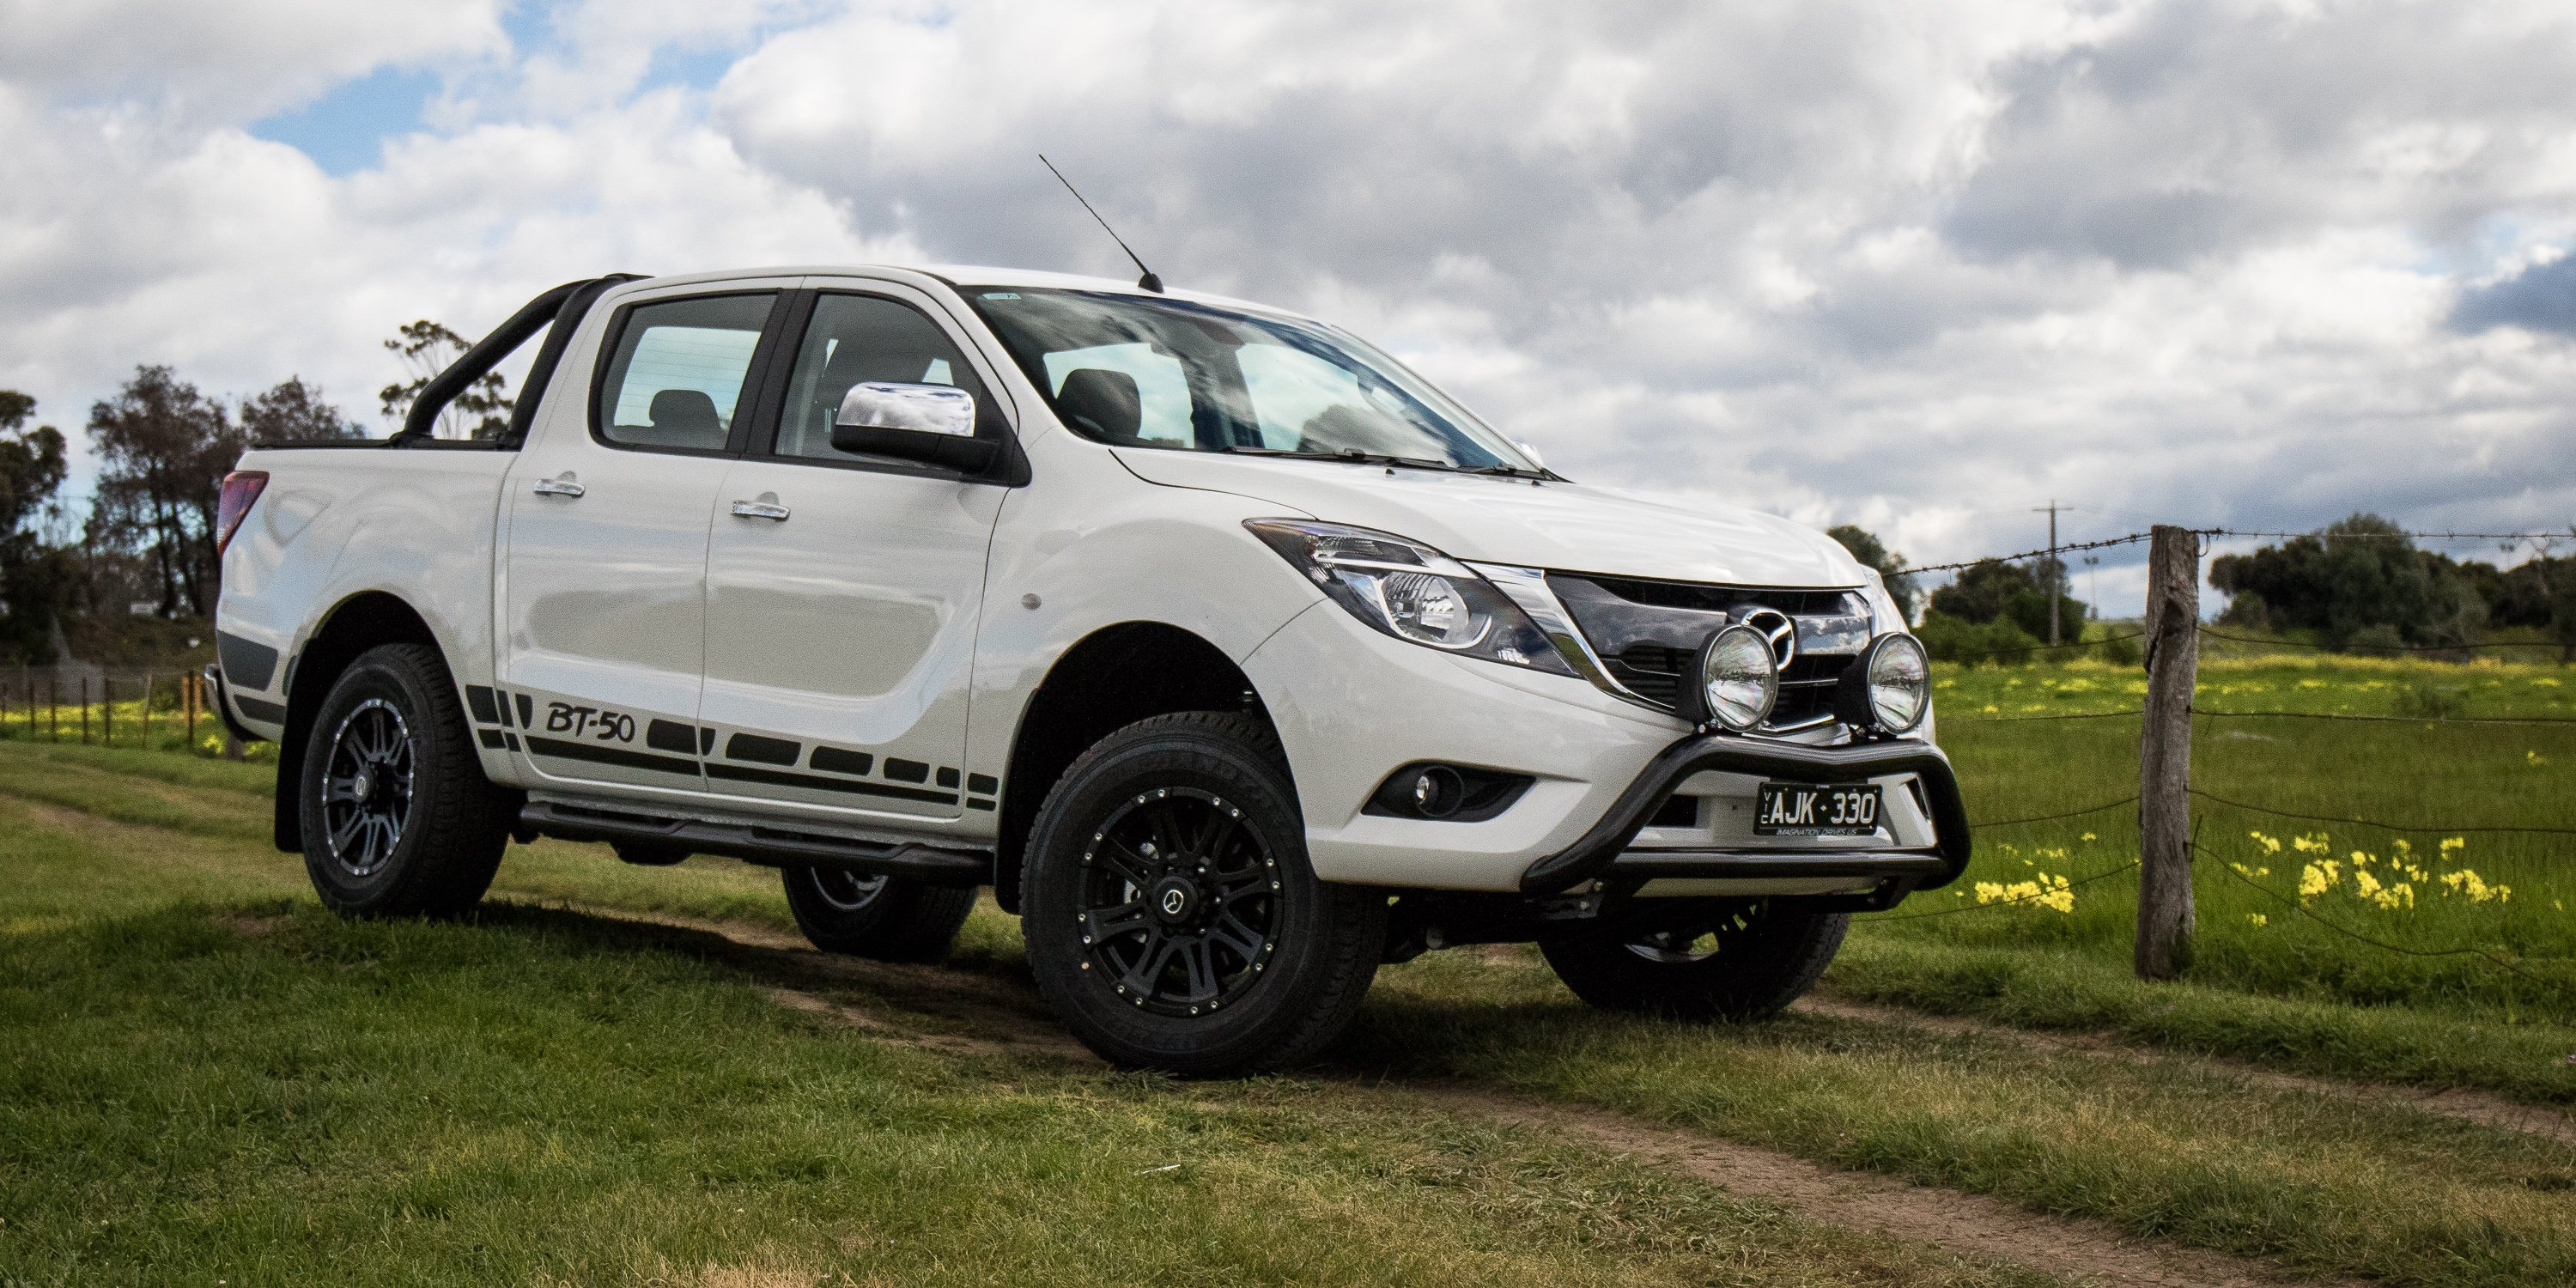 2016 mazda bt 50 xtr kuroi pack review caradvice. Black Bedroom Furniture Sets. Home Design Ideas